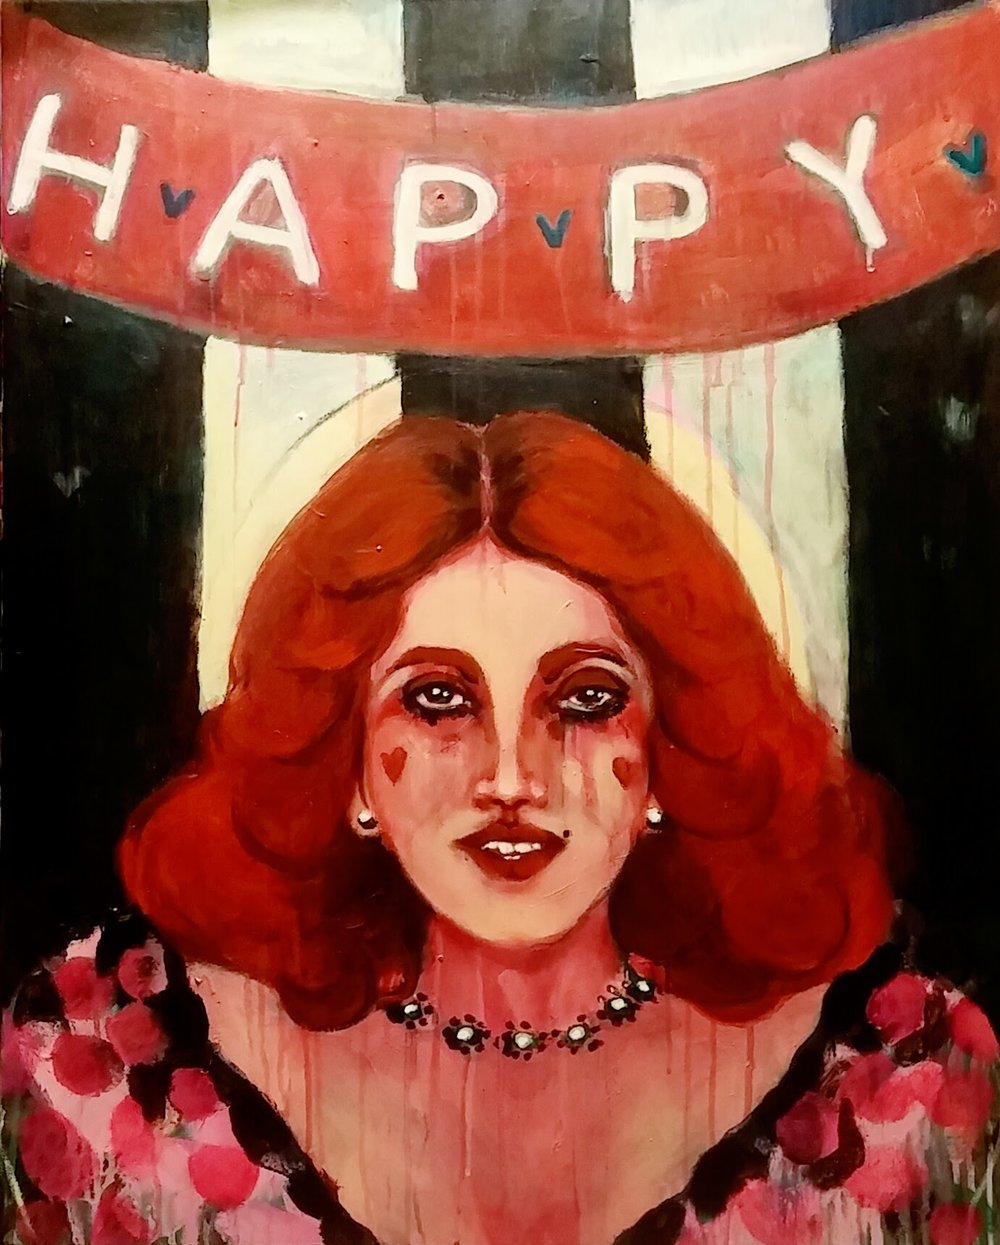 Birthday Girl, 2016, acrylic on canvas, 30 x 24 inches  SOLD